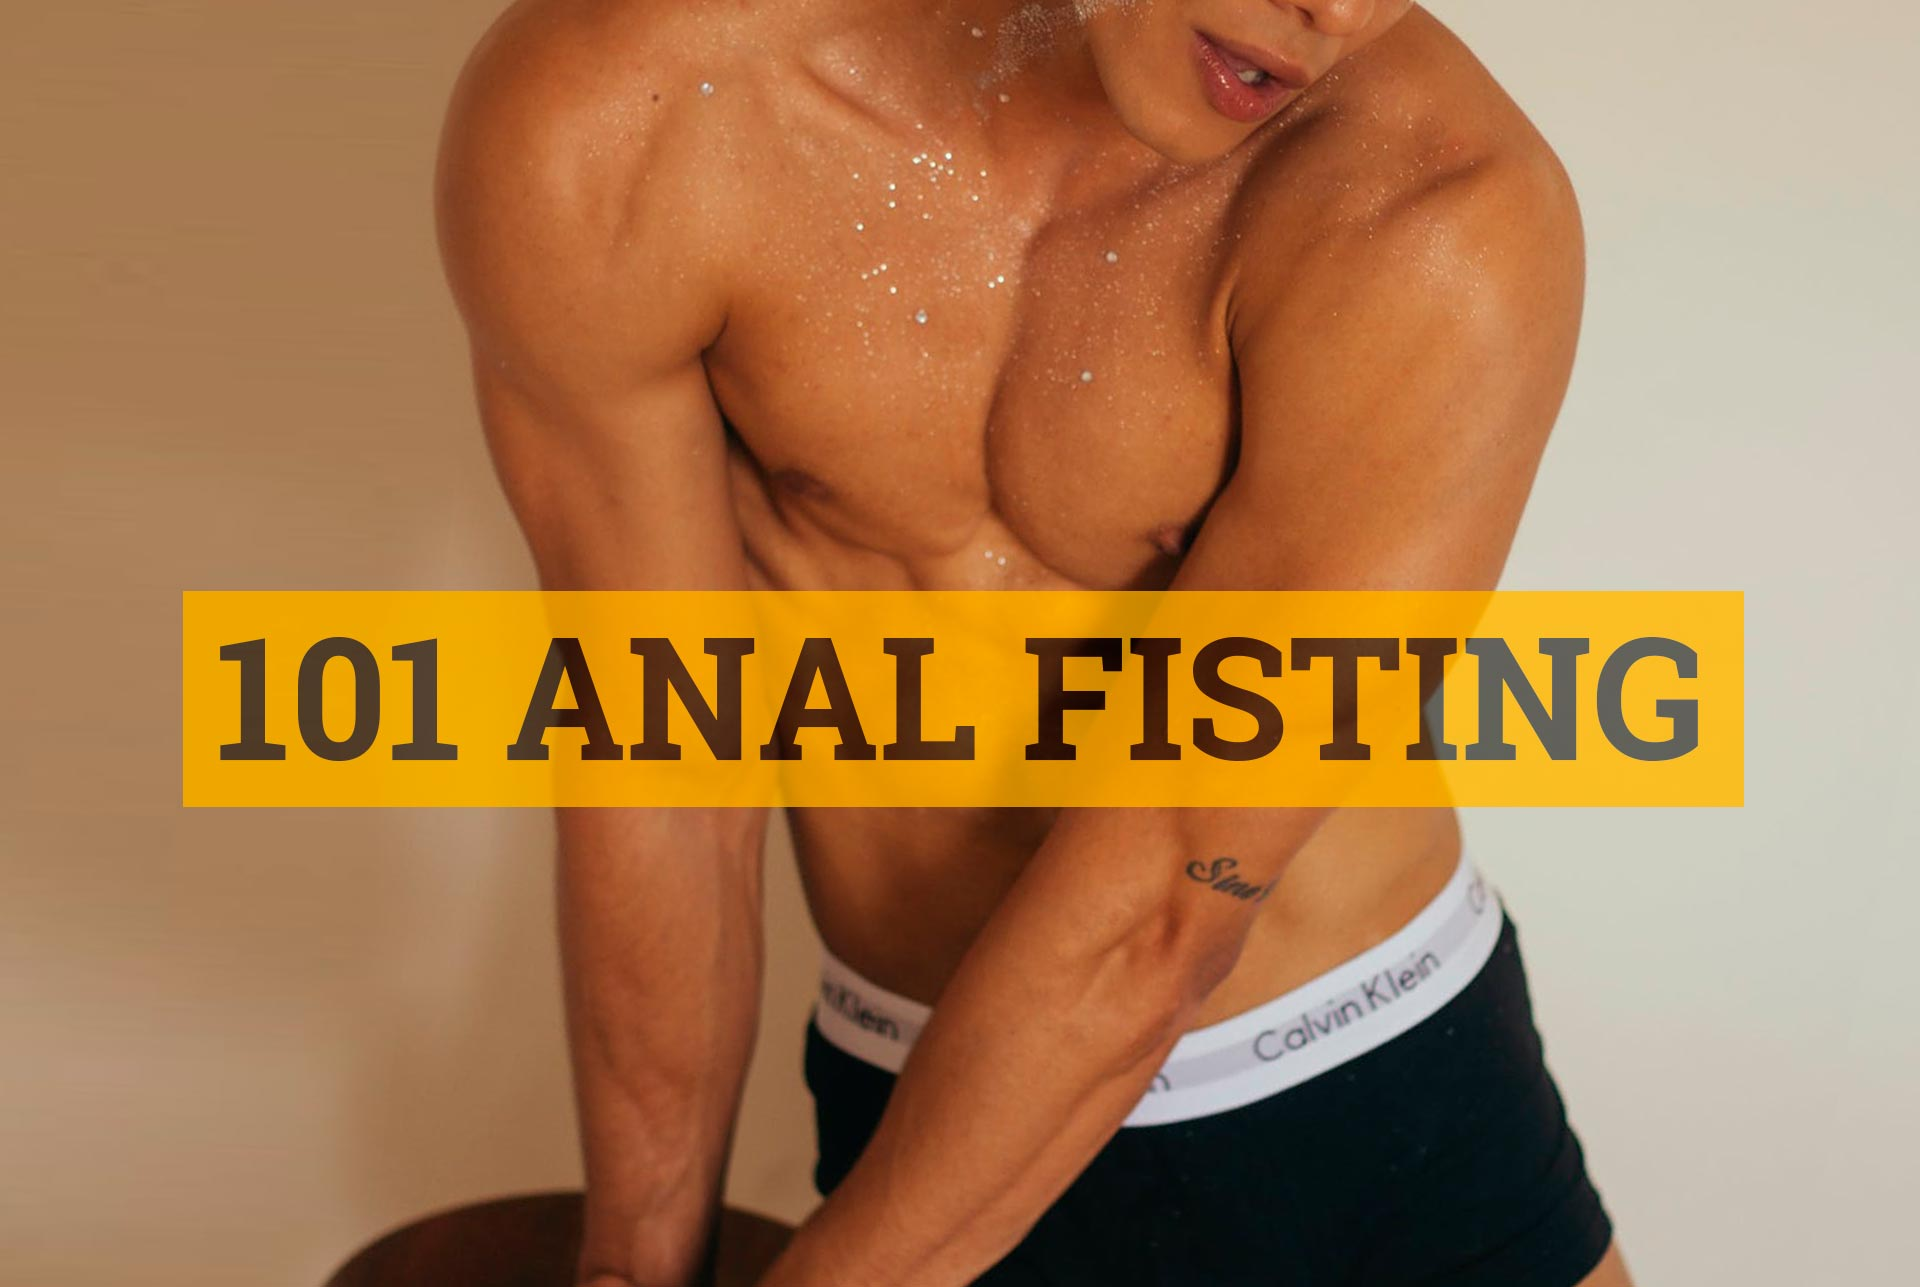 101 Fisting – Definition, tips, guidelines, tutorial and Videos